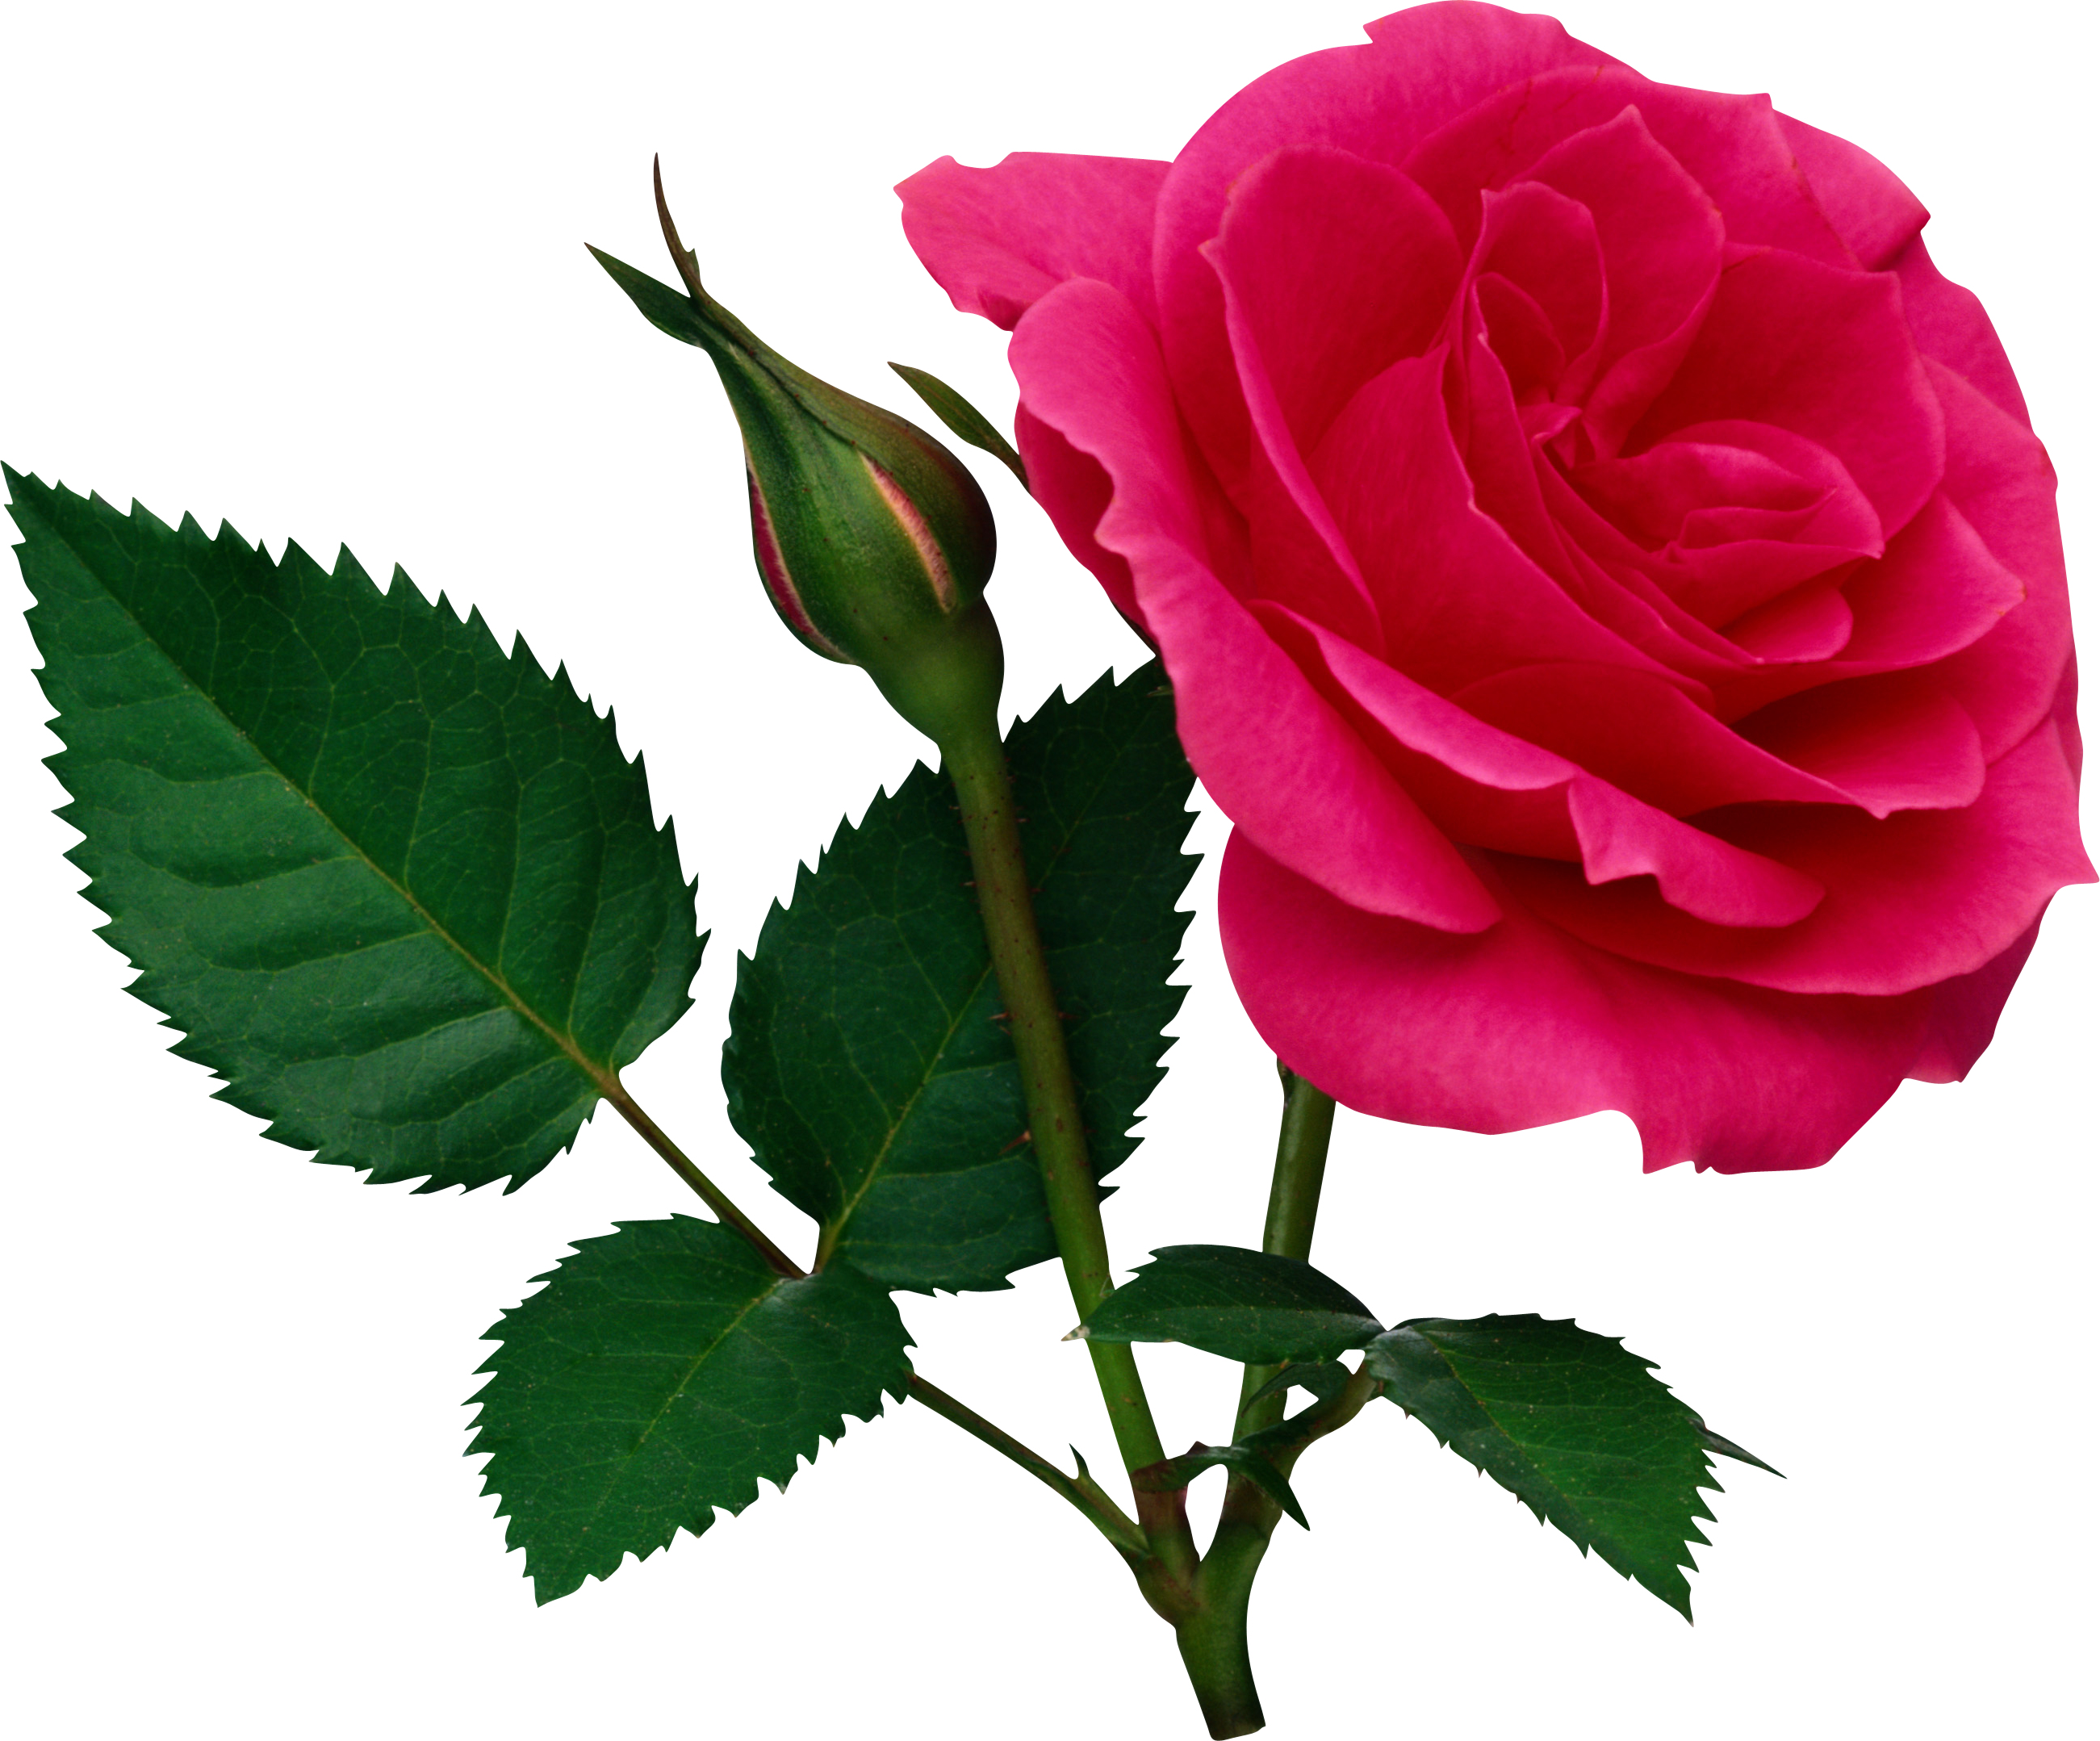 Green rose png. Pink large and bud